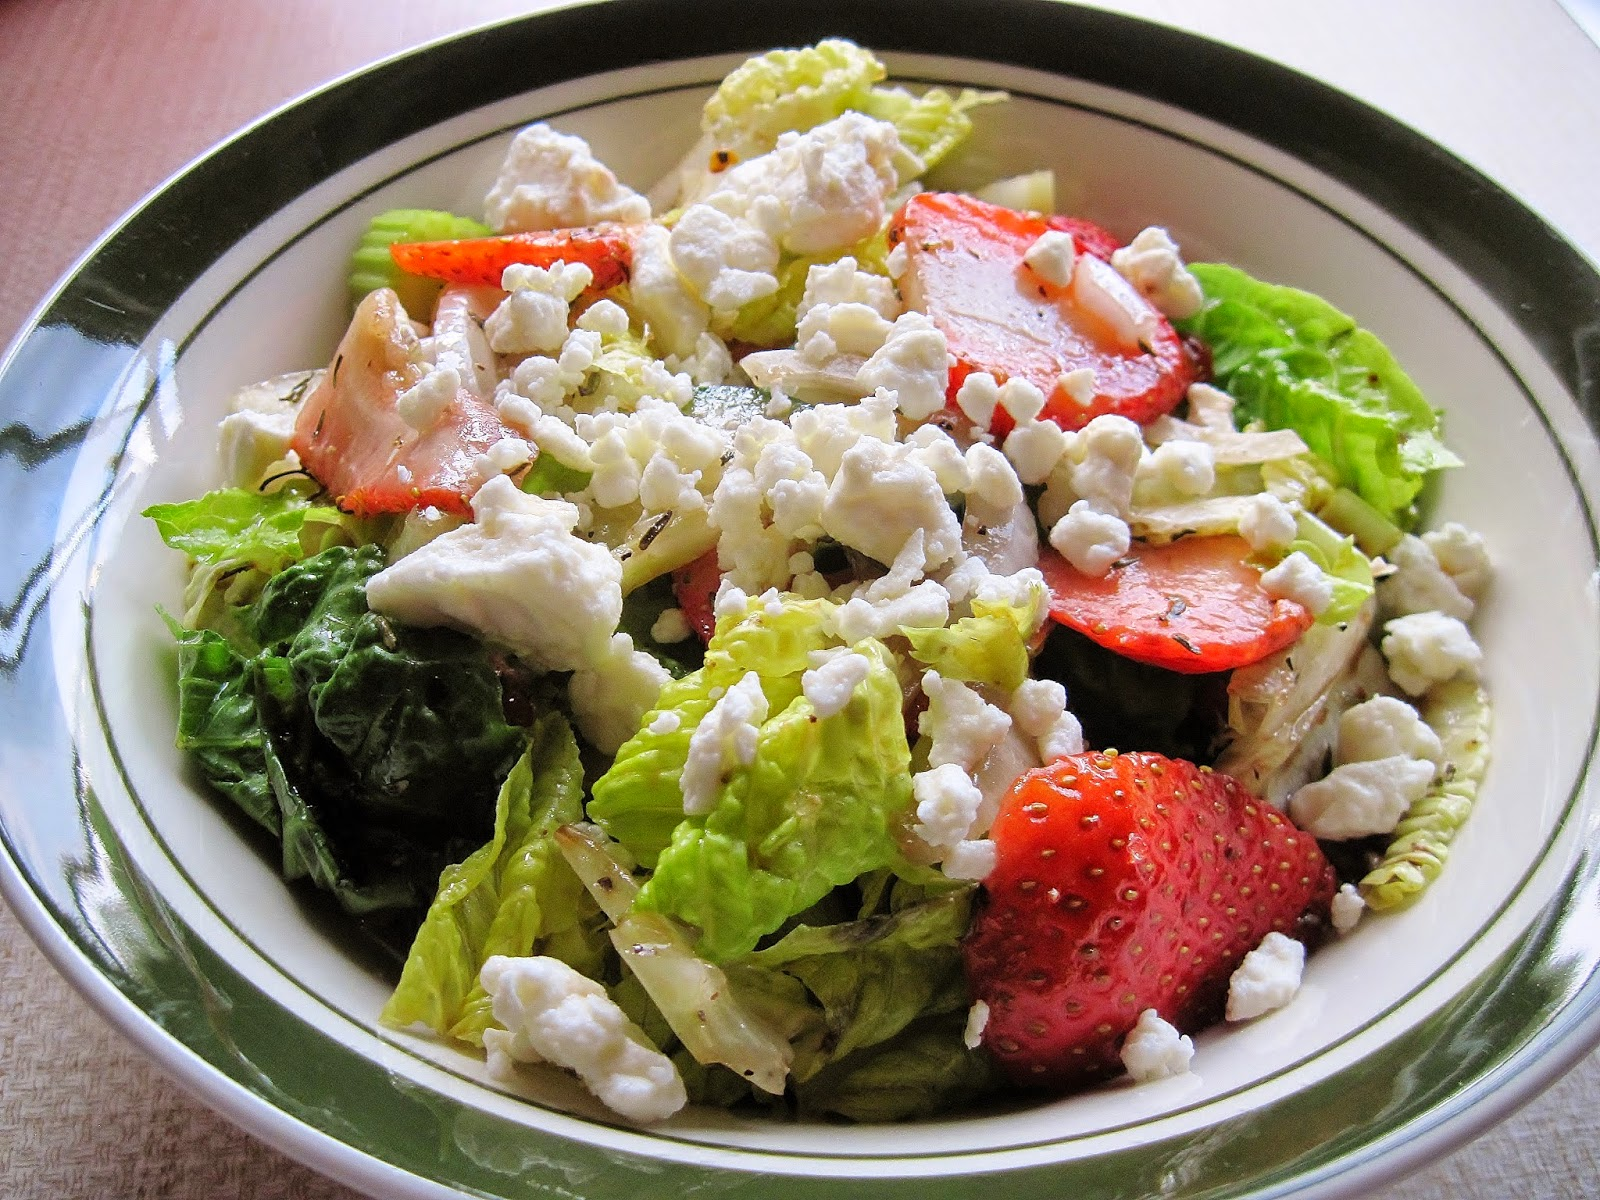 Stawberry salad with chocolate balsamic dressing